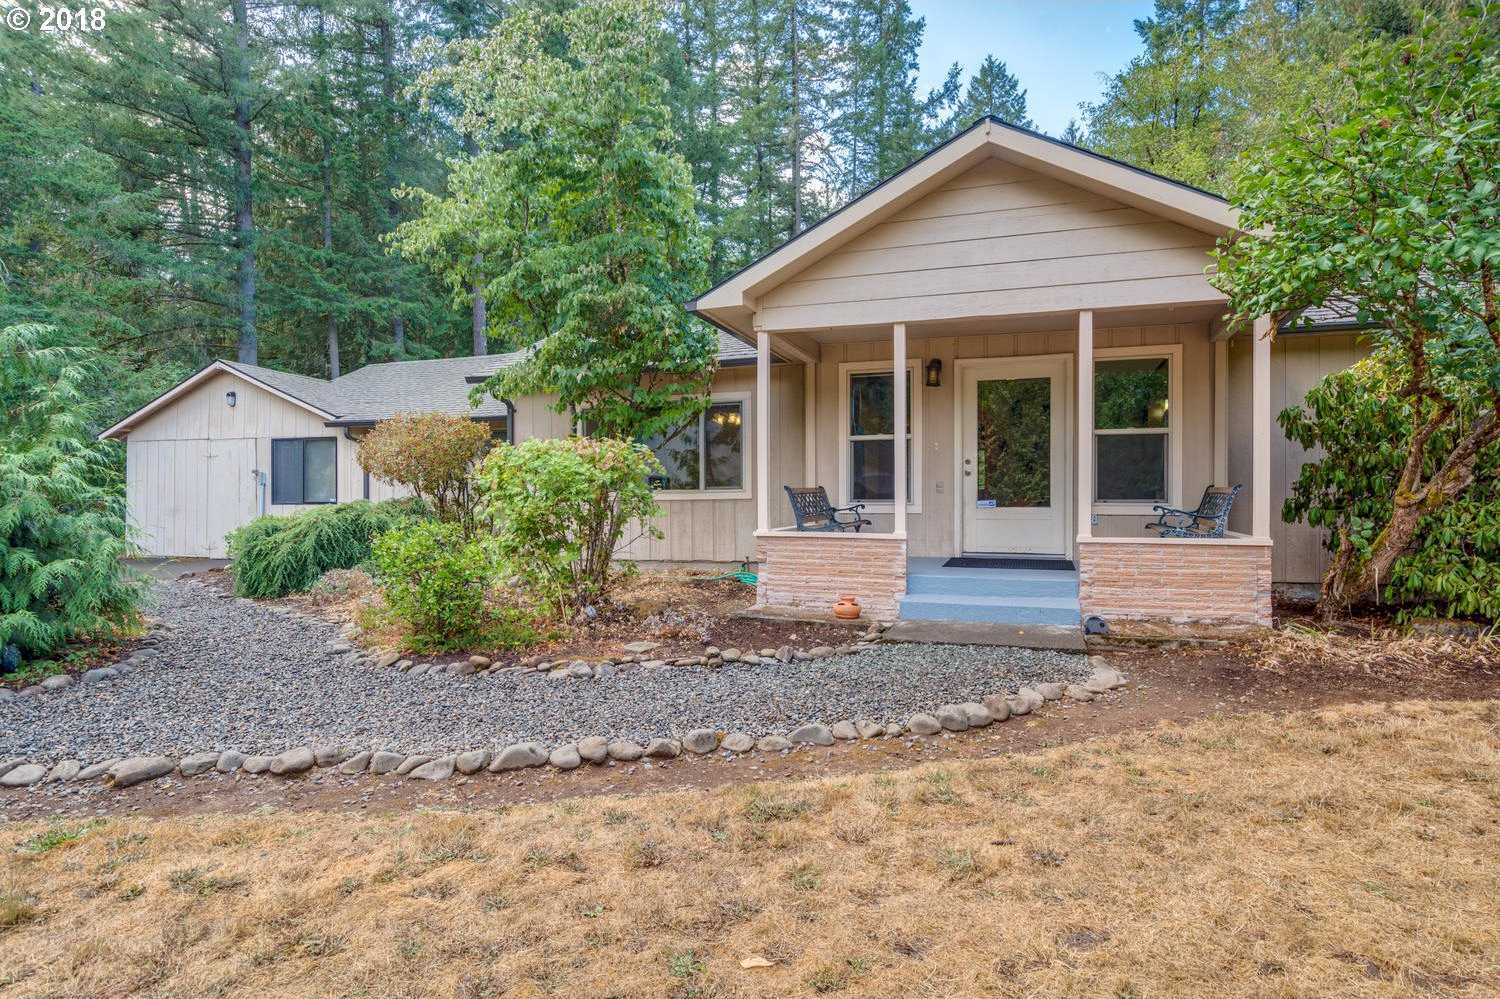 $450,000 - 4Br/2Ba -  for Sale in Molalla